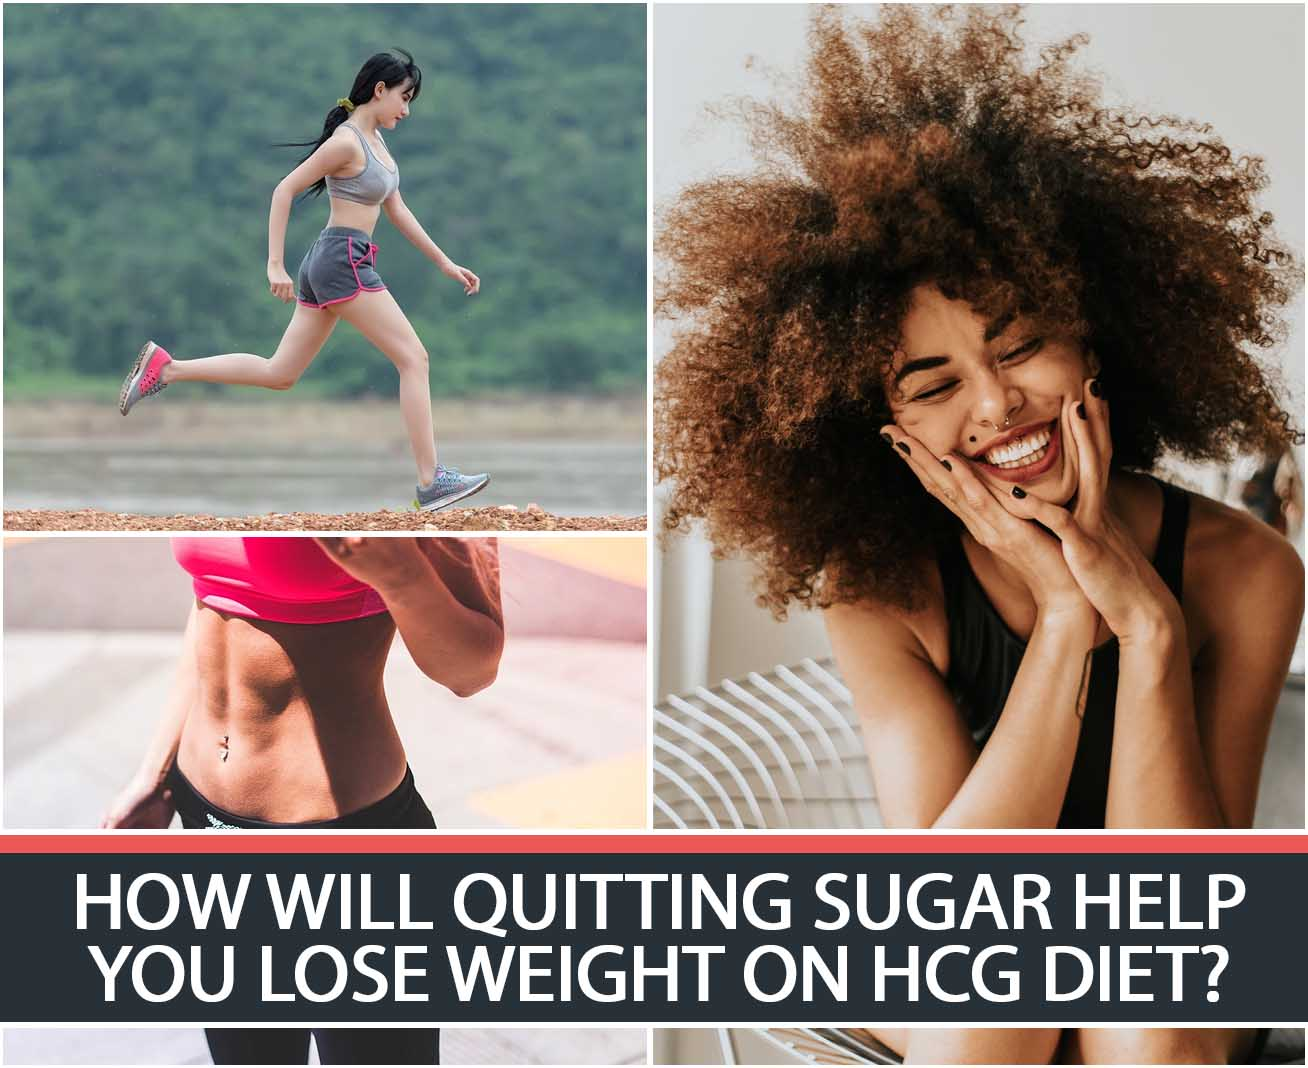 HOW WILL QUITTING SUGAR HELP YOU LOSE WEIGHT ON HCG DIET?